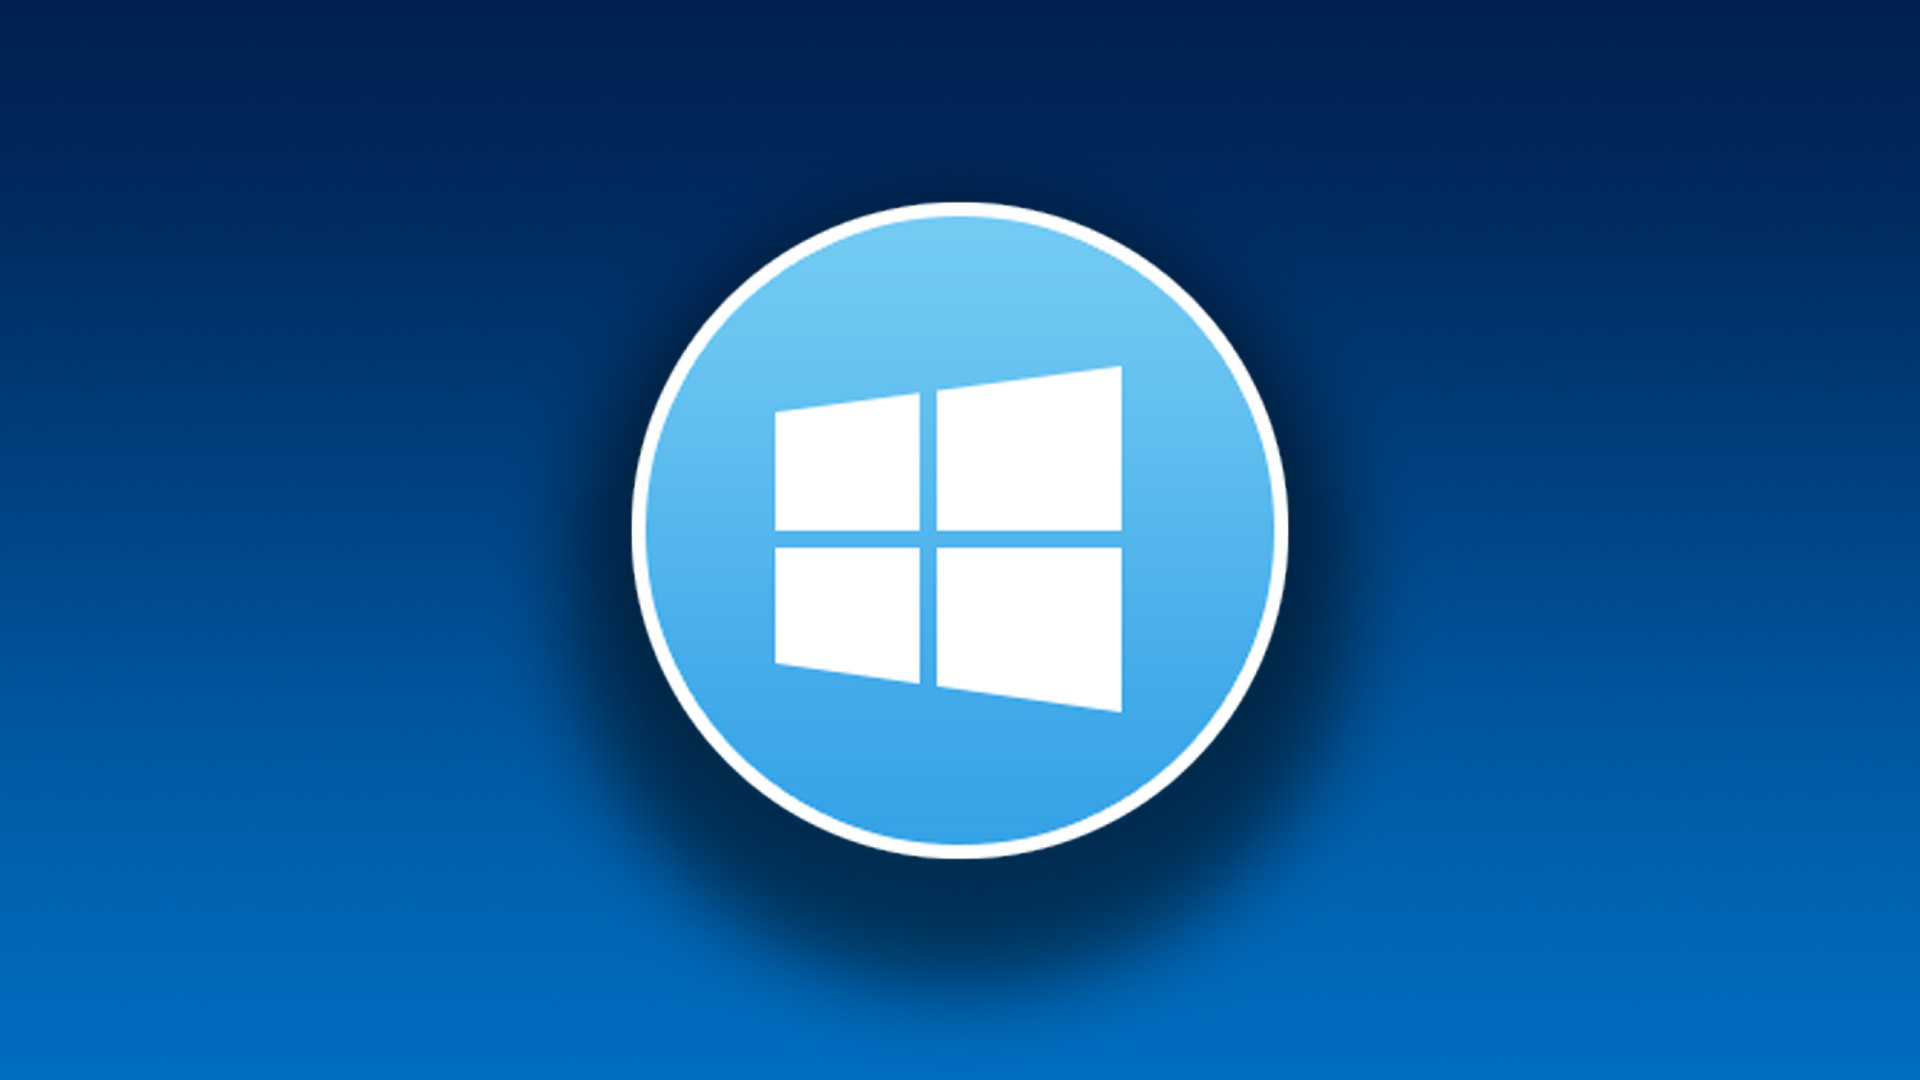 can i pirate games on windows 10